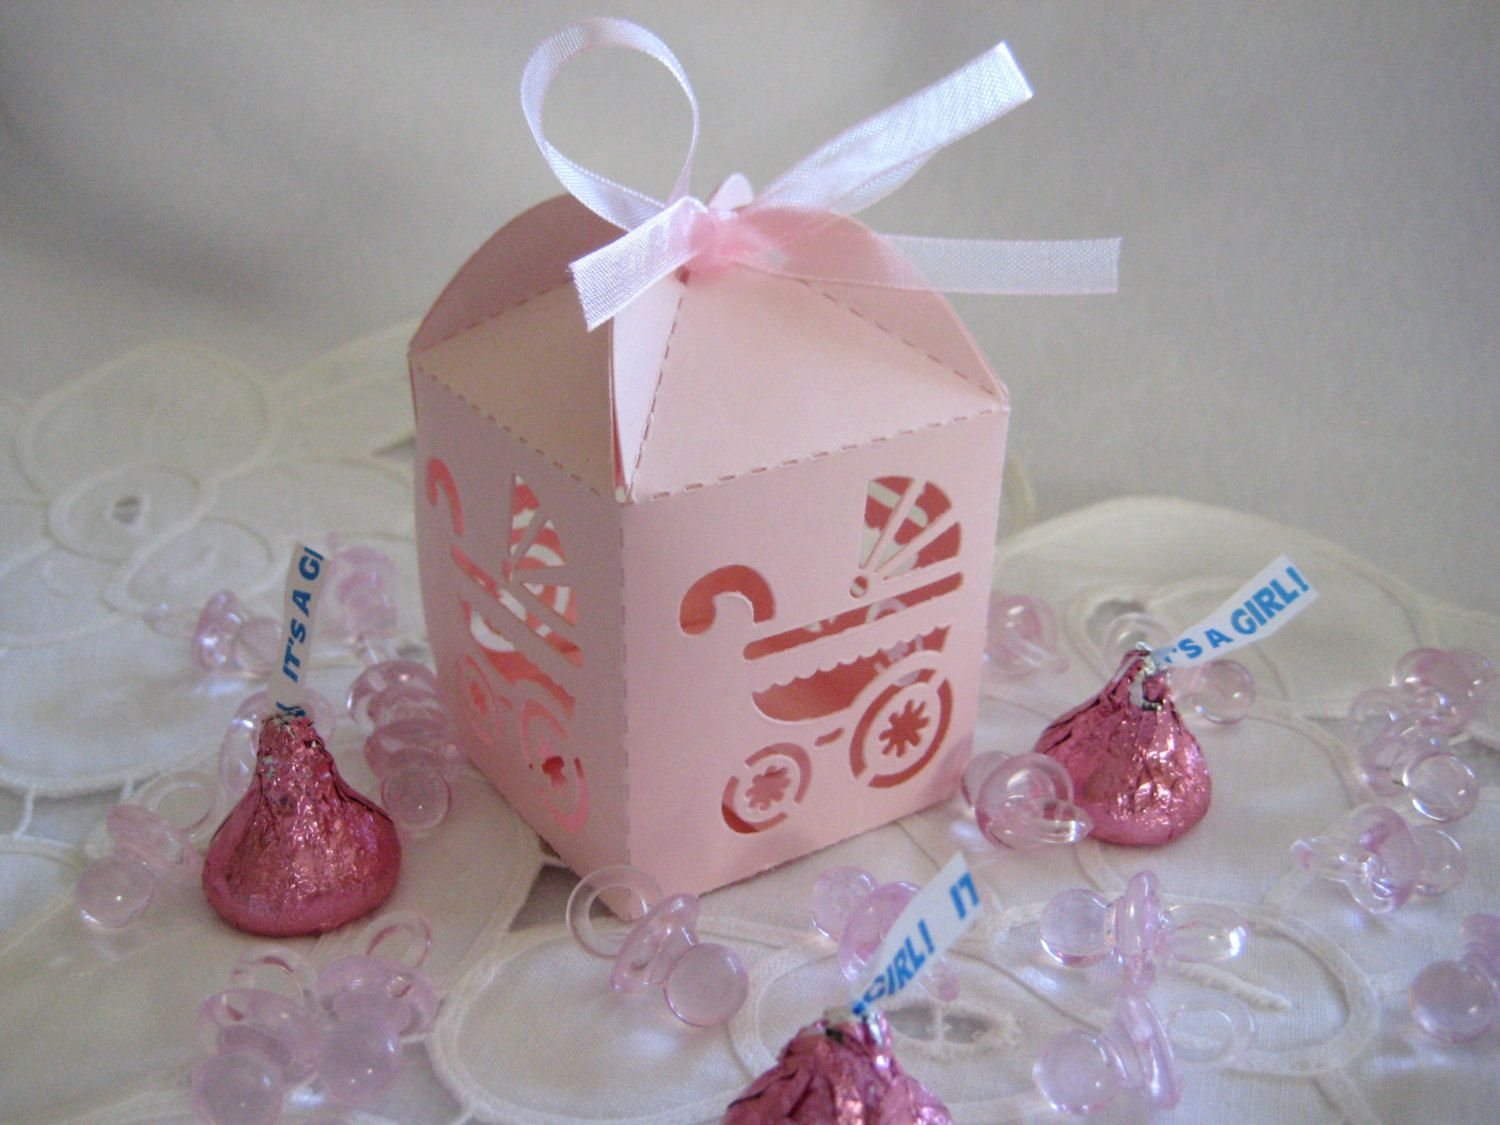 Pink, Laser-Cut Baby Carriage Party Favor Boxes for Baby Shower Favors, Christening Favors, Baptism Favors - set of 12. $5.95, via Etsy.